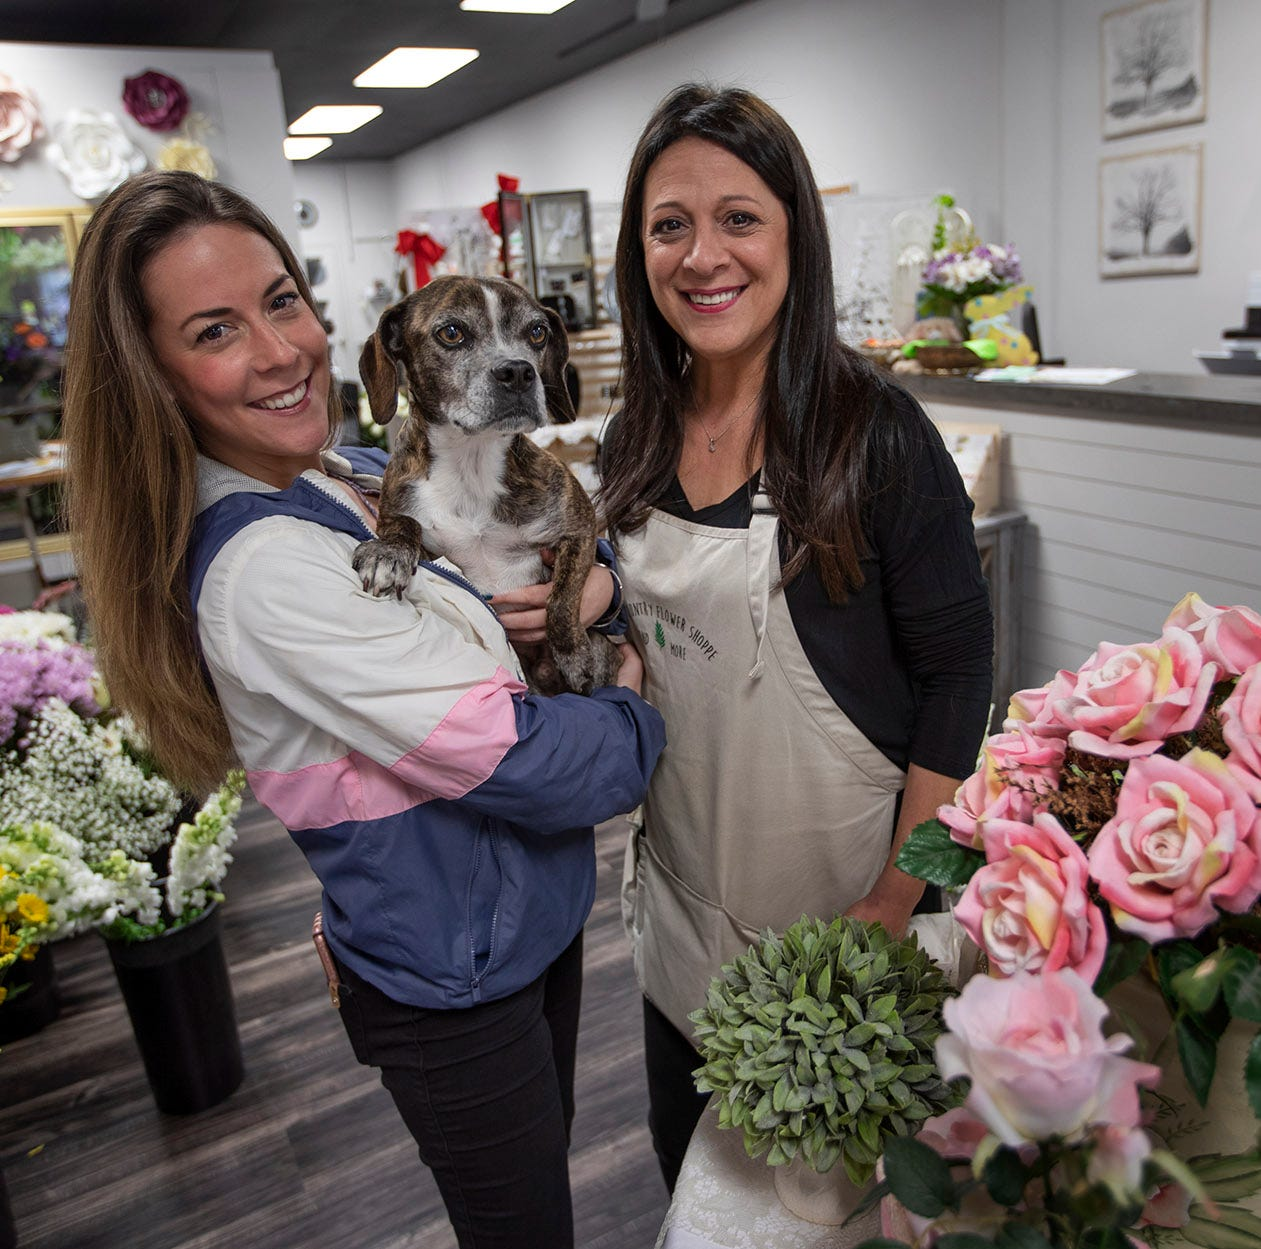 A Country Flower Shoppe in Colts Neck brings daughter and mother together